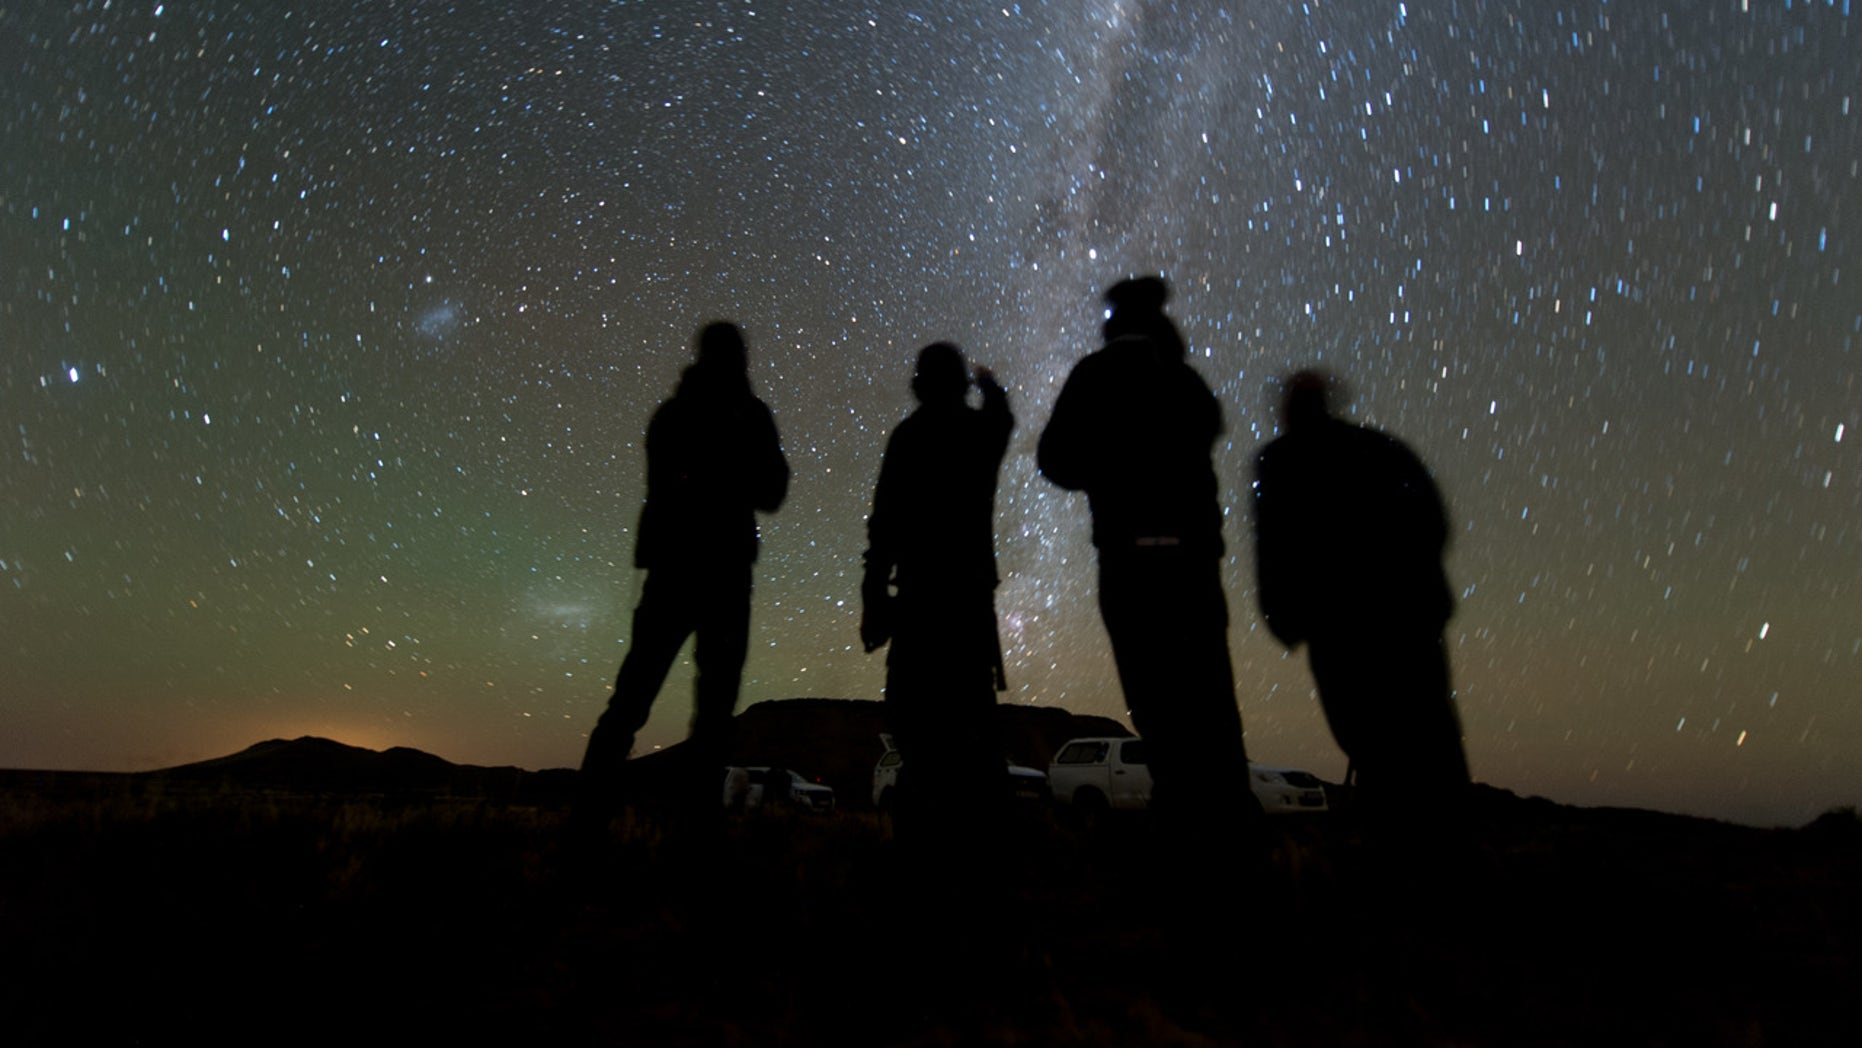 Four members of the New Horizons' South African observation team scan the sky while waiting for the start of the 2014 MU69 occultation, early on the morning of June 3, 2017.